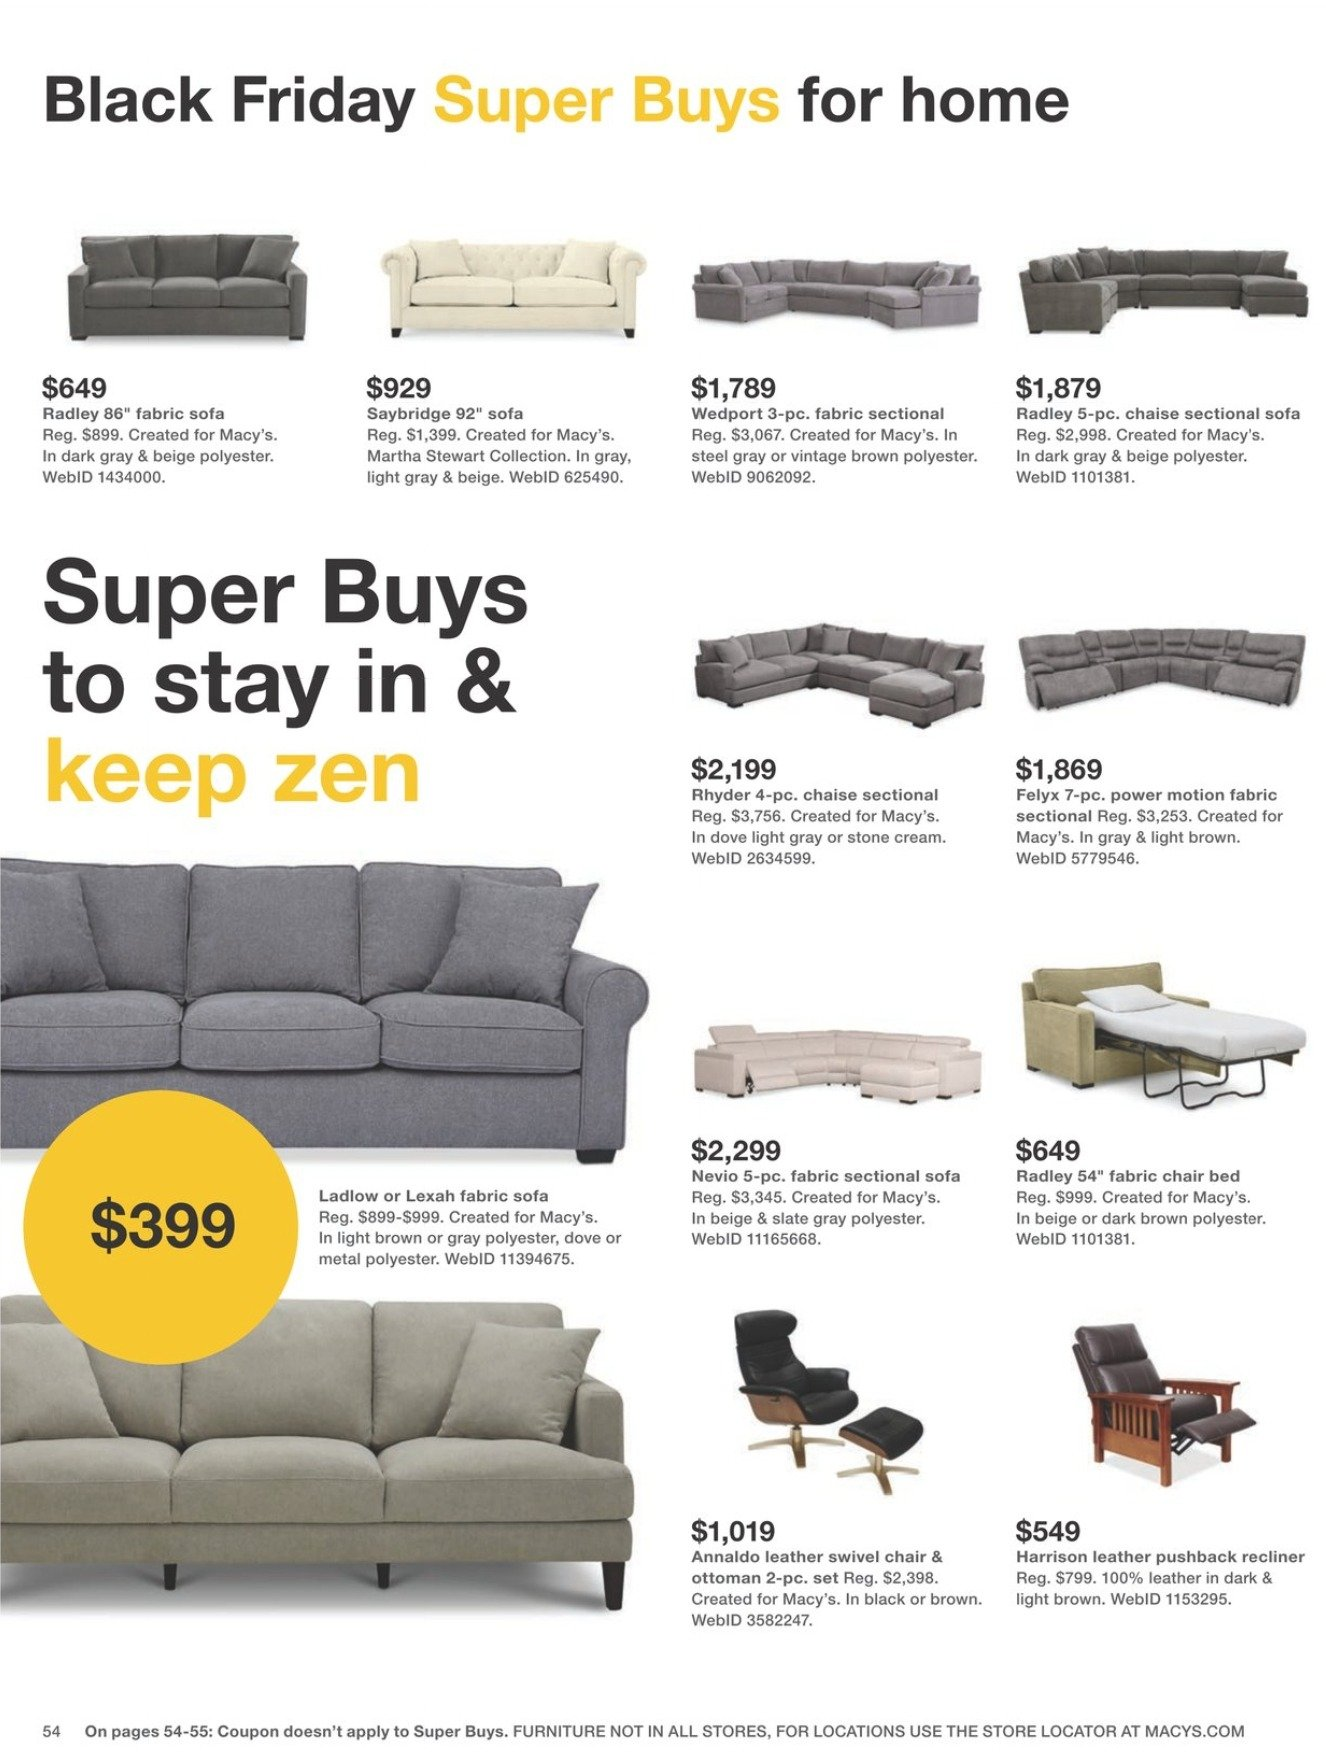 Macy's Black Friday 2020 Page 54